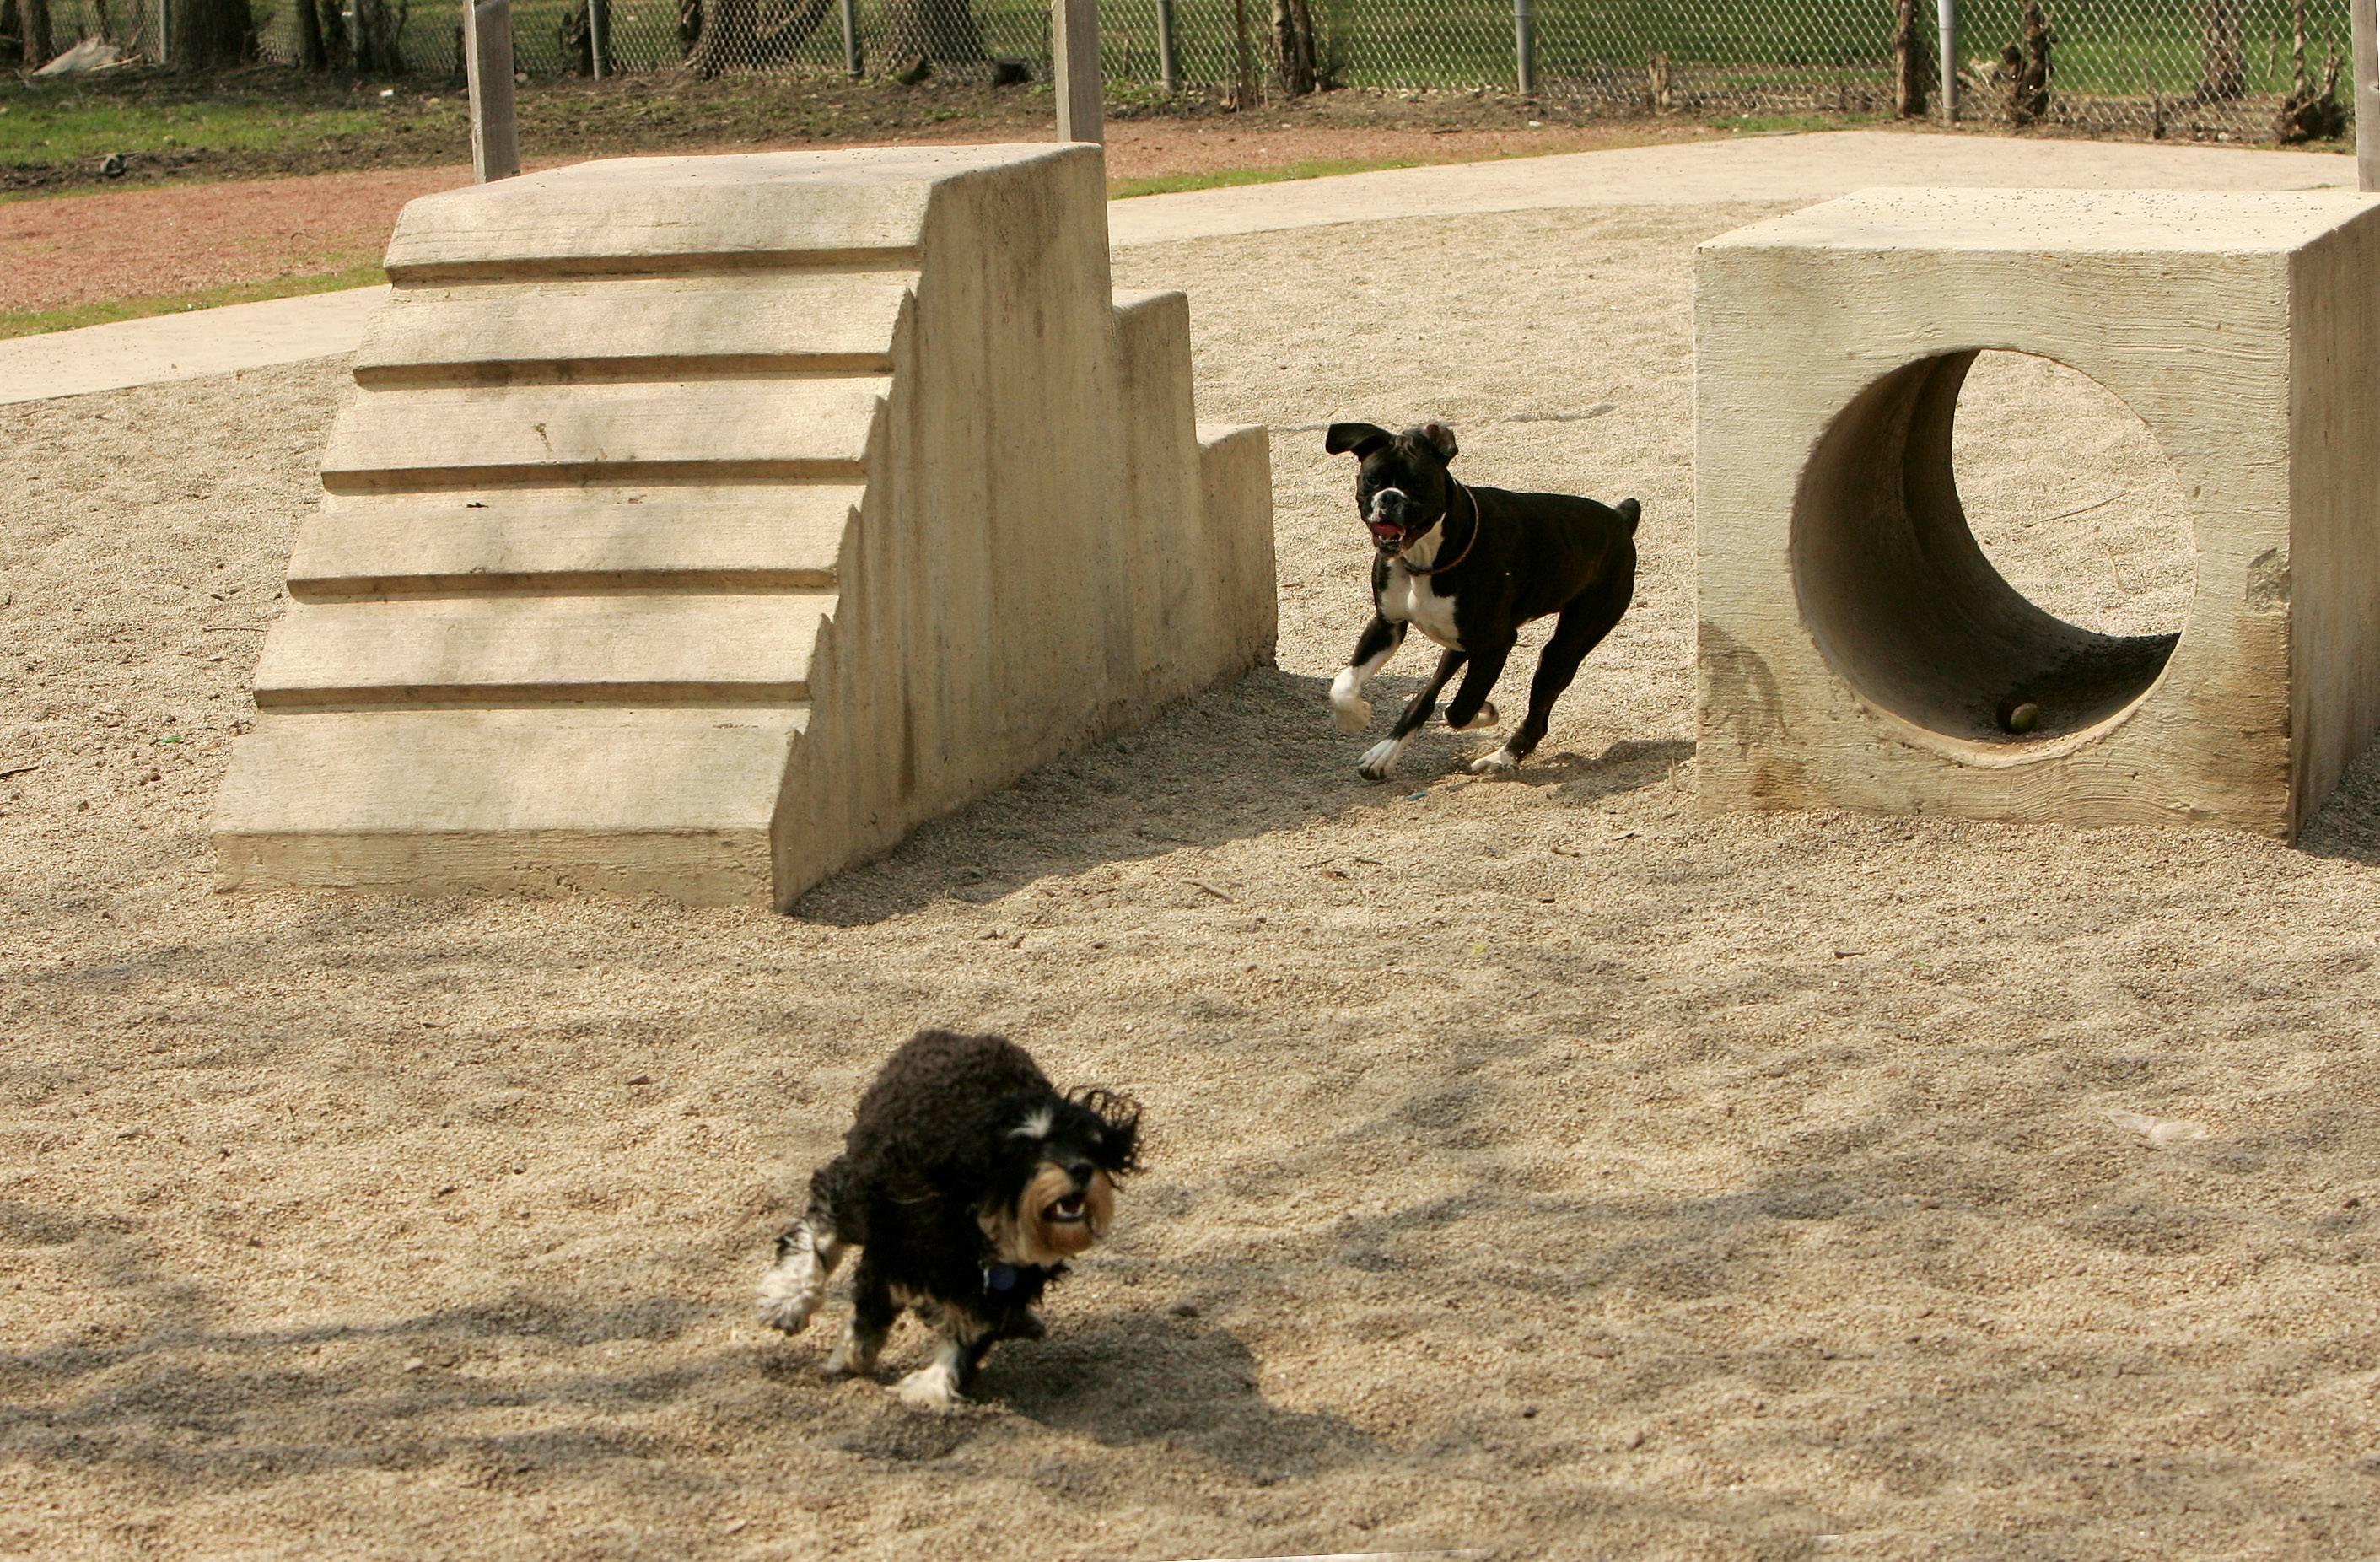 Dogs get a workout on the exercise equipment at the Jaycee Memorial Park dog exercise area in Deerfield.